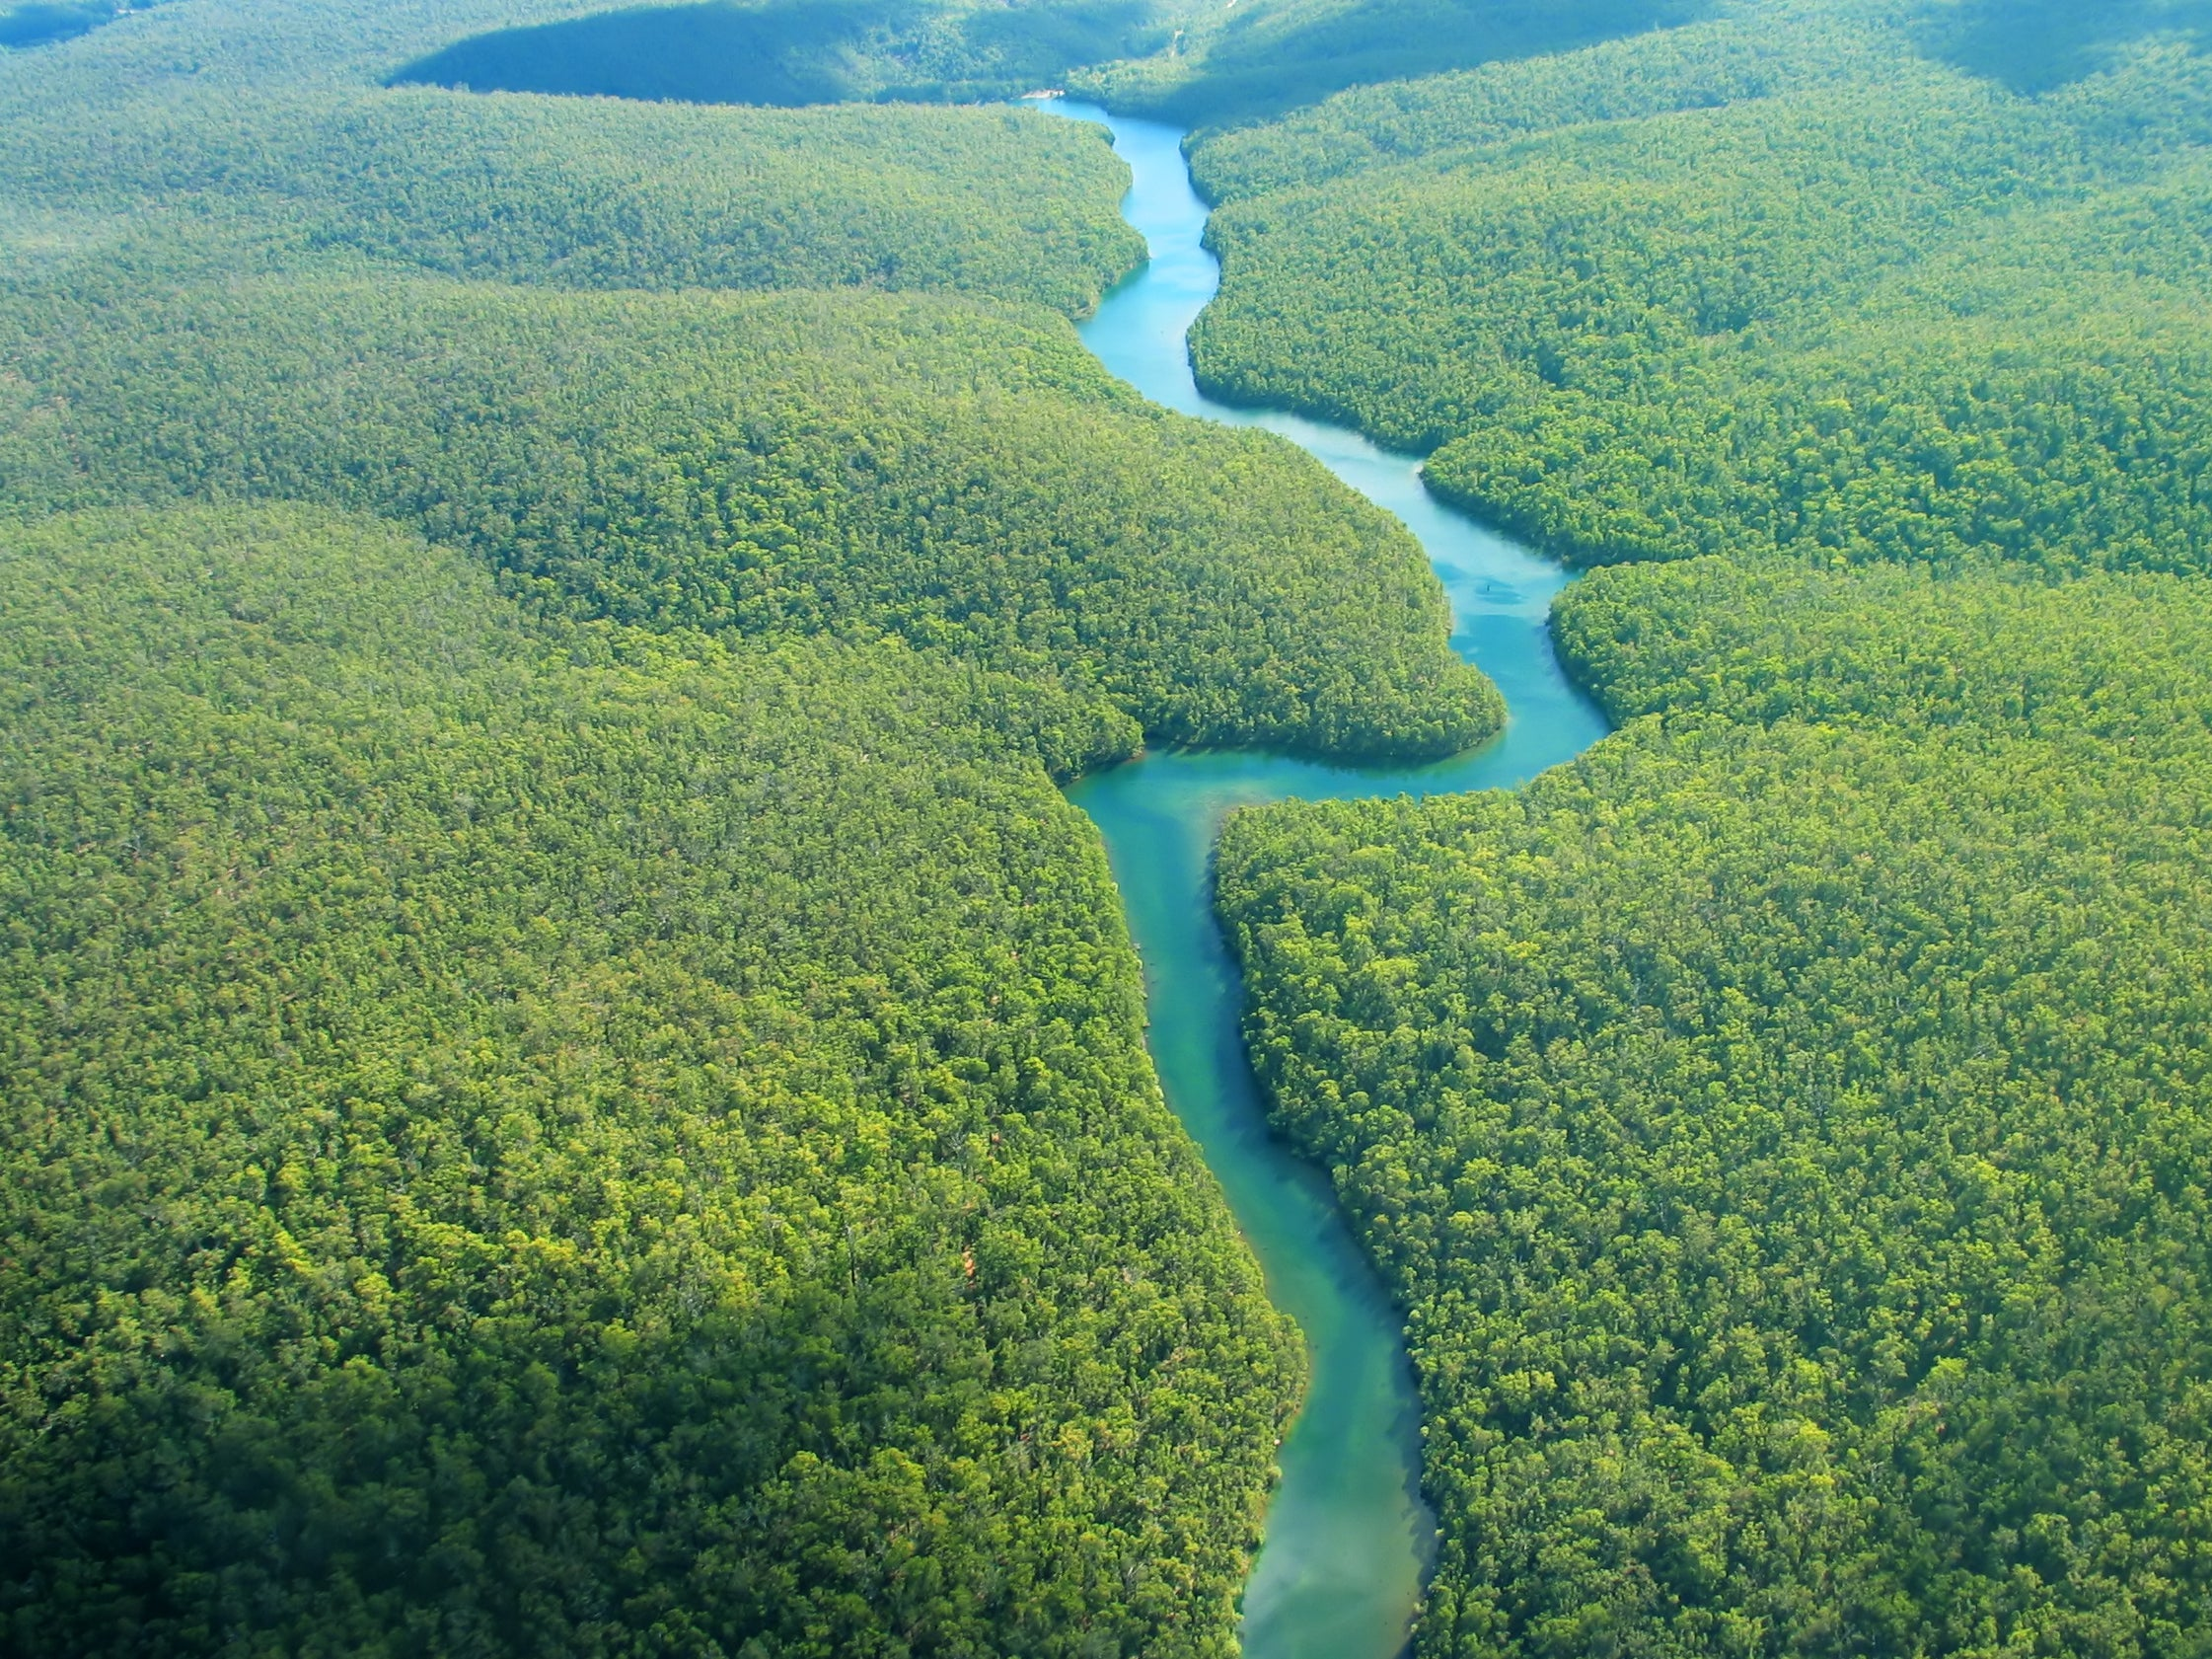 Tropical rainforest 'tipping point' identified as scientists call for 'immediate' action to tackle climate change